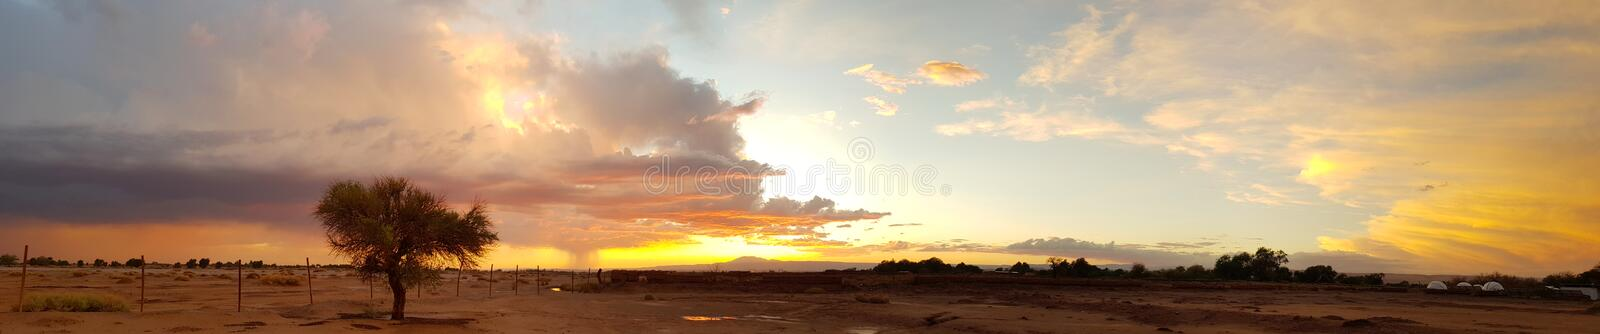 Wonderful sunset with thunderstorm in the arid and desolate landscape of the Atacama Desert. Sunset lights with thunderstorm in the arid and desolate landscape royalty free stock photos